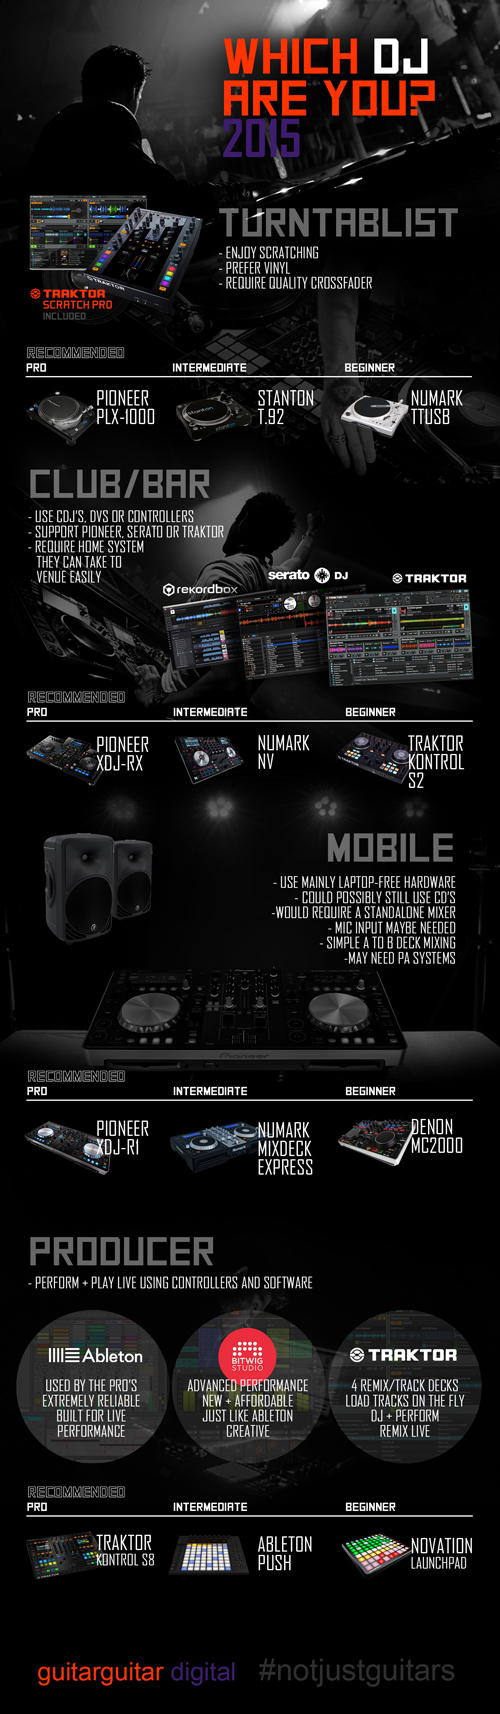 click for Which DJ Are You Banner at guitarguitar digital